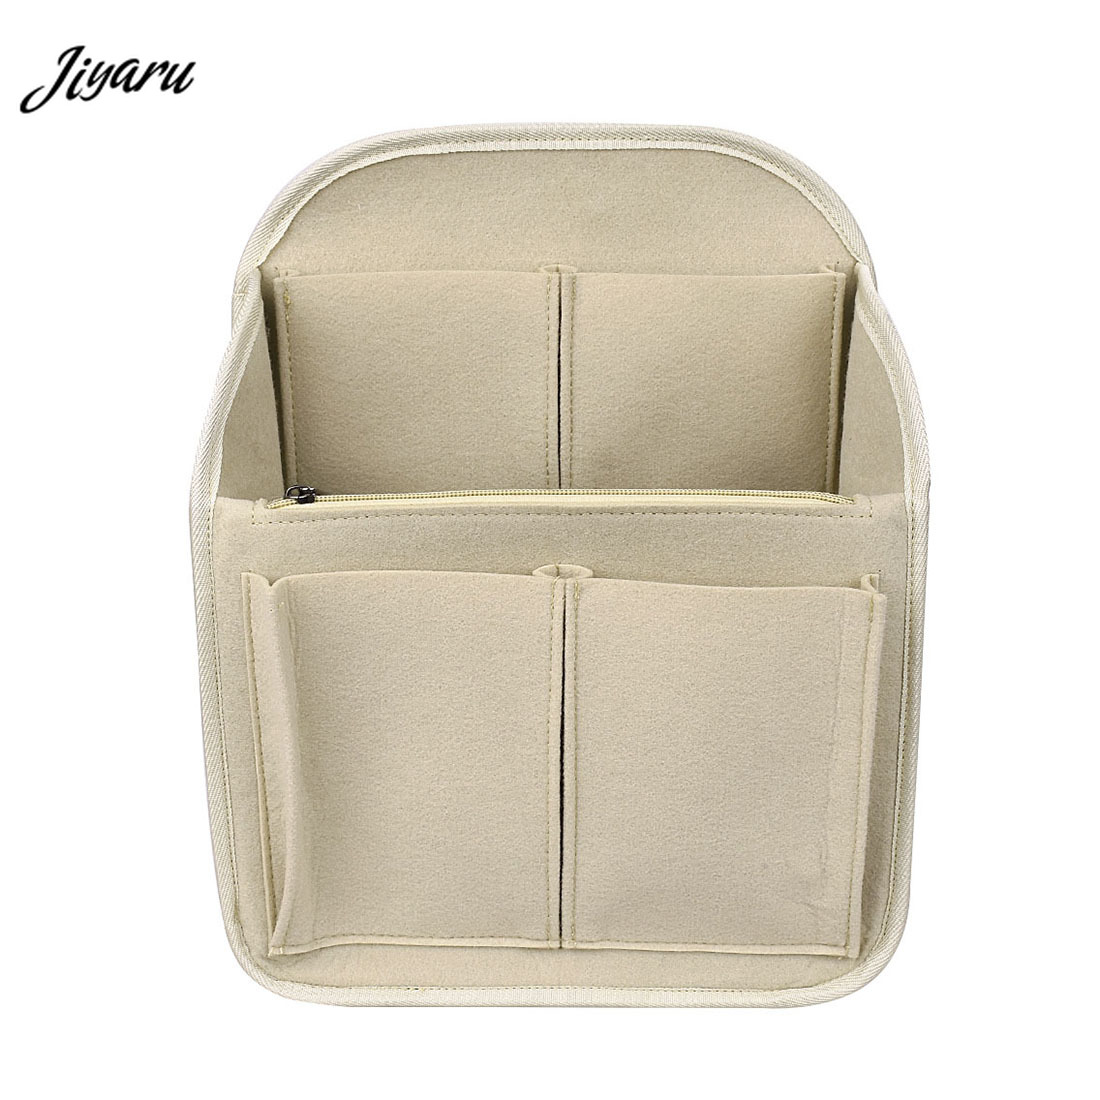 Make Up Bag Organizer Felt Insert Bag Travel Inner Purse Portable Cosmetic Bag Suitable For Handbag Organizer